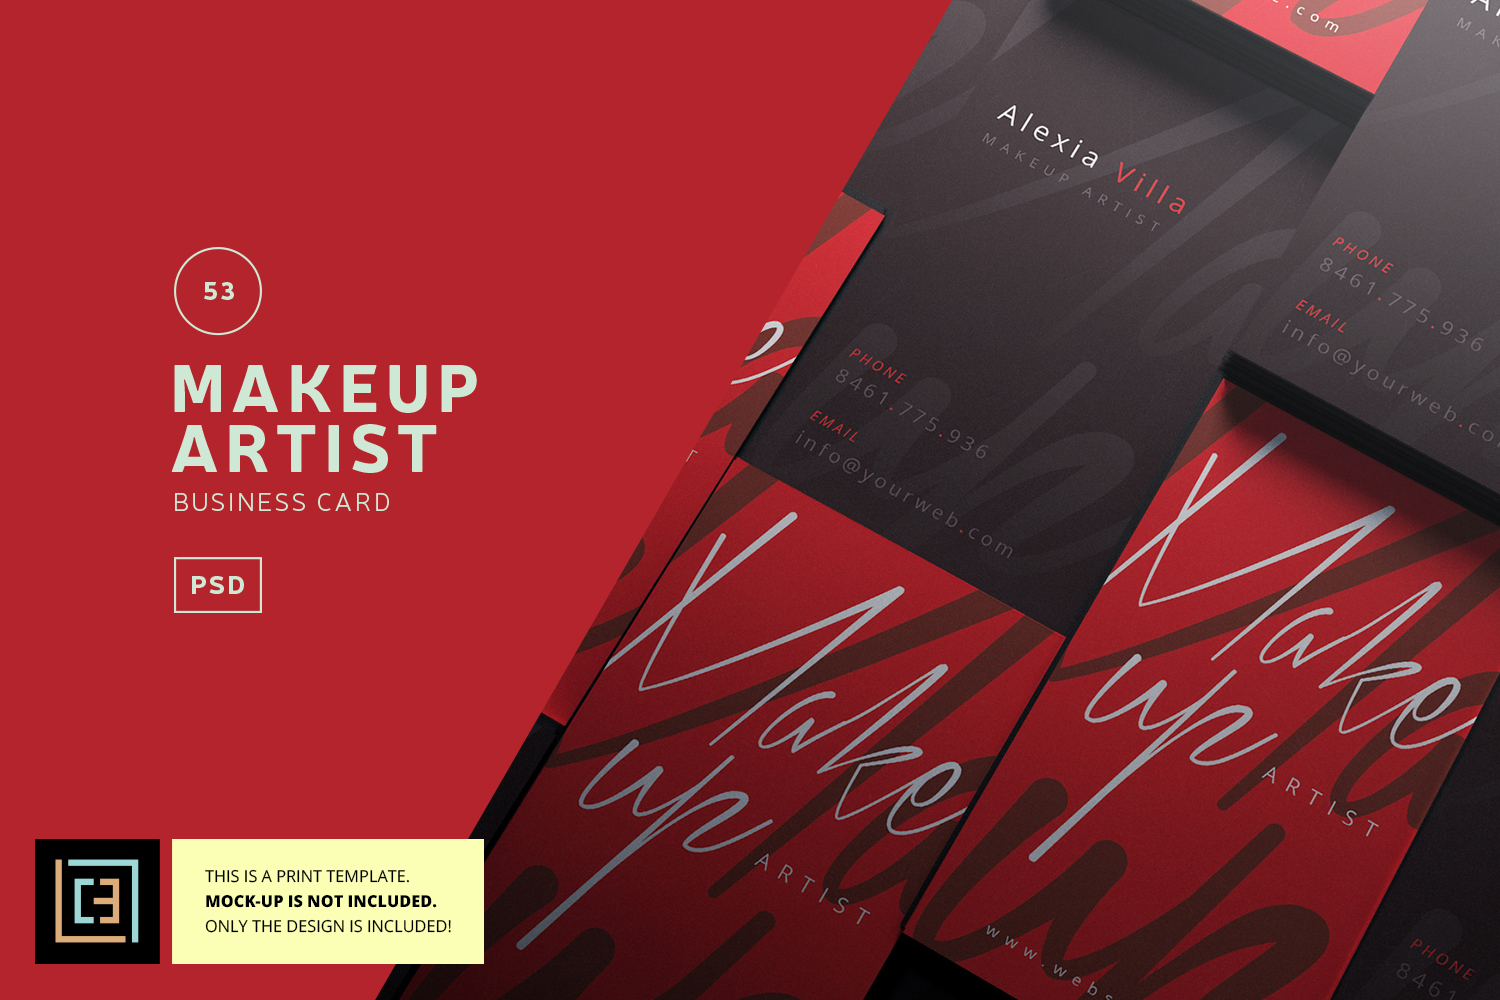 Makeup Artist Business Card - BC053 by | Design Bundles